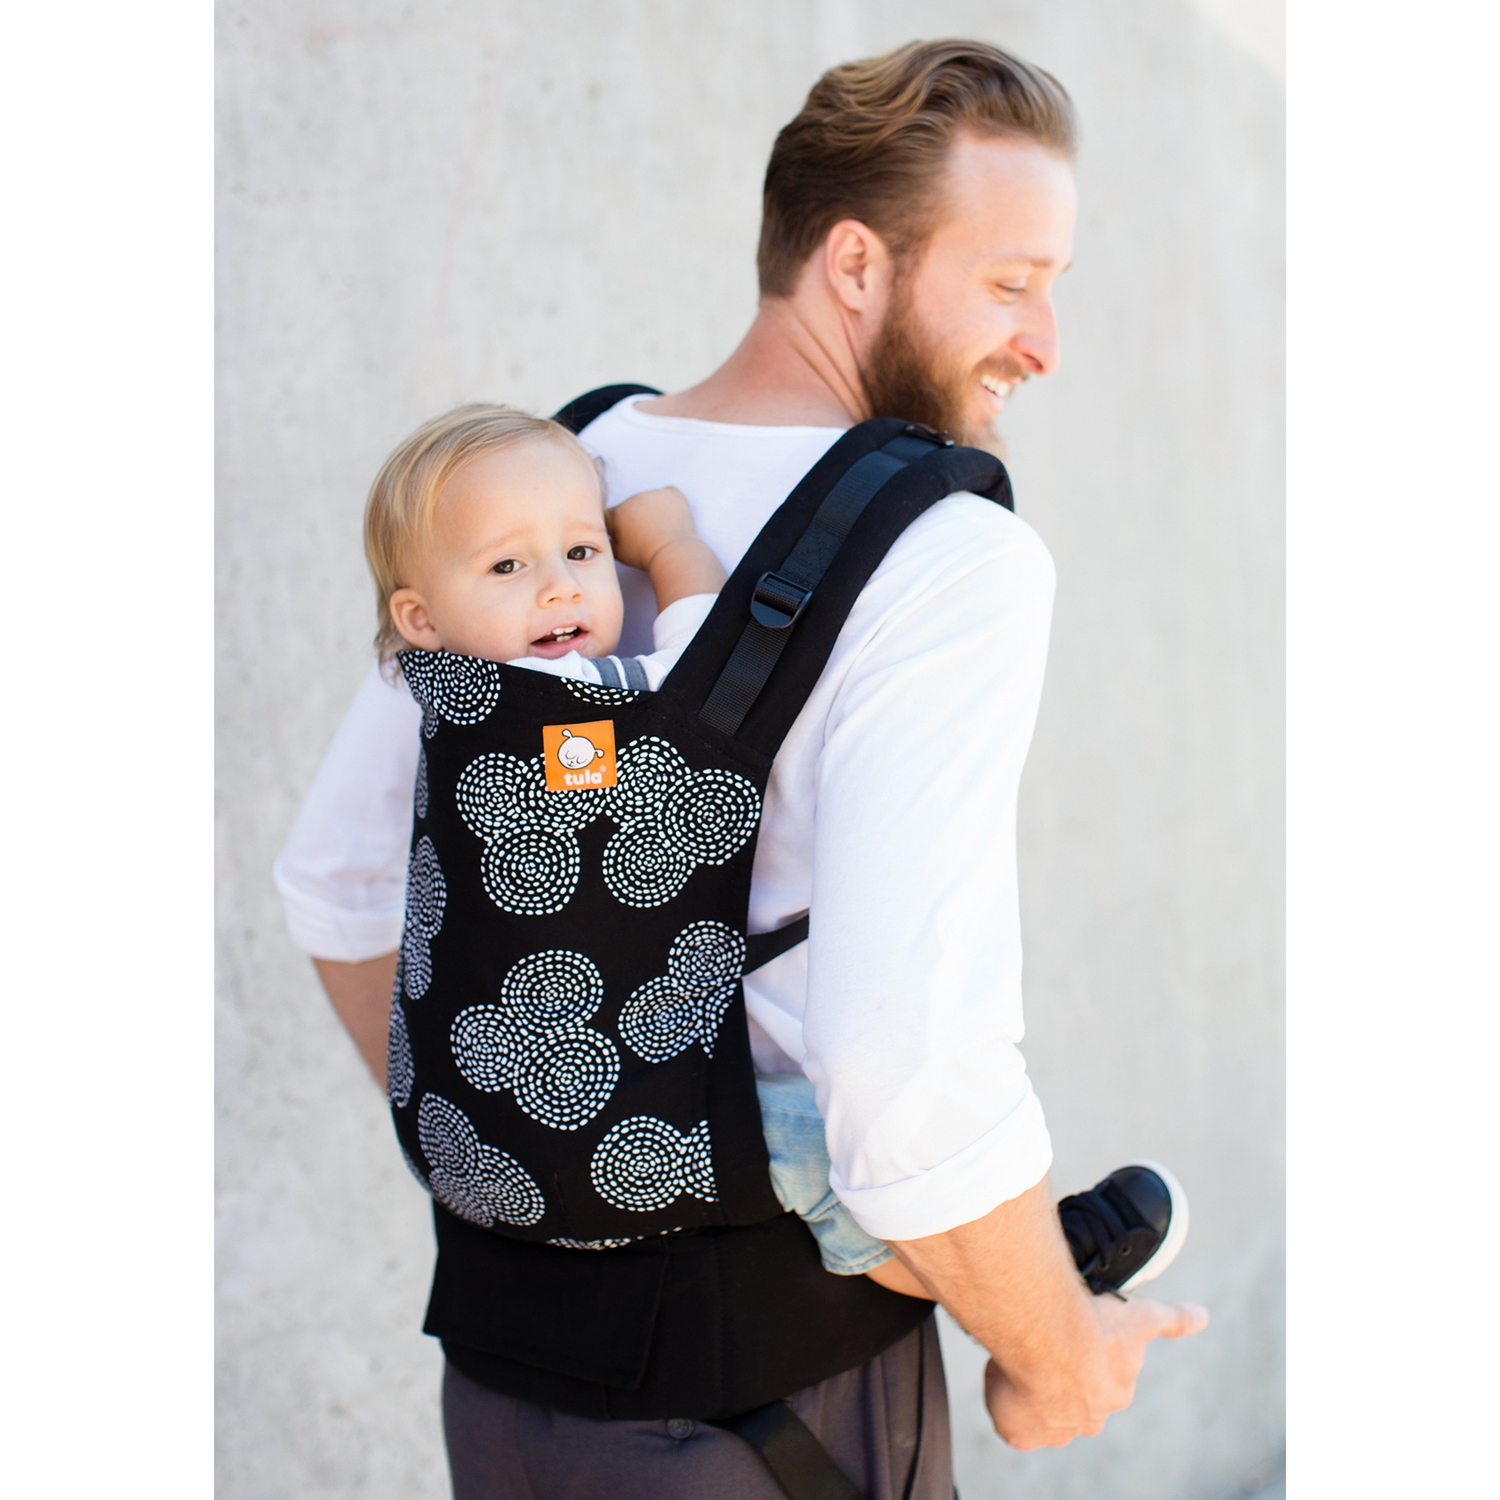 Tula Ergonomic Toddler Carrier - Concentric